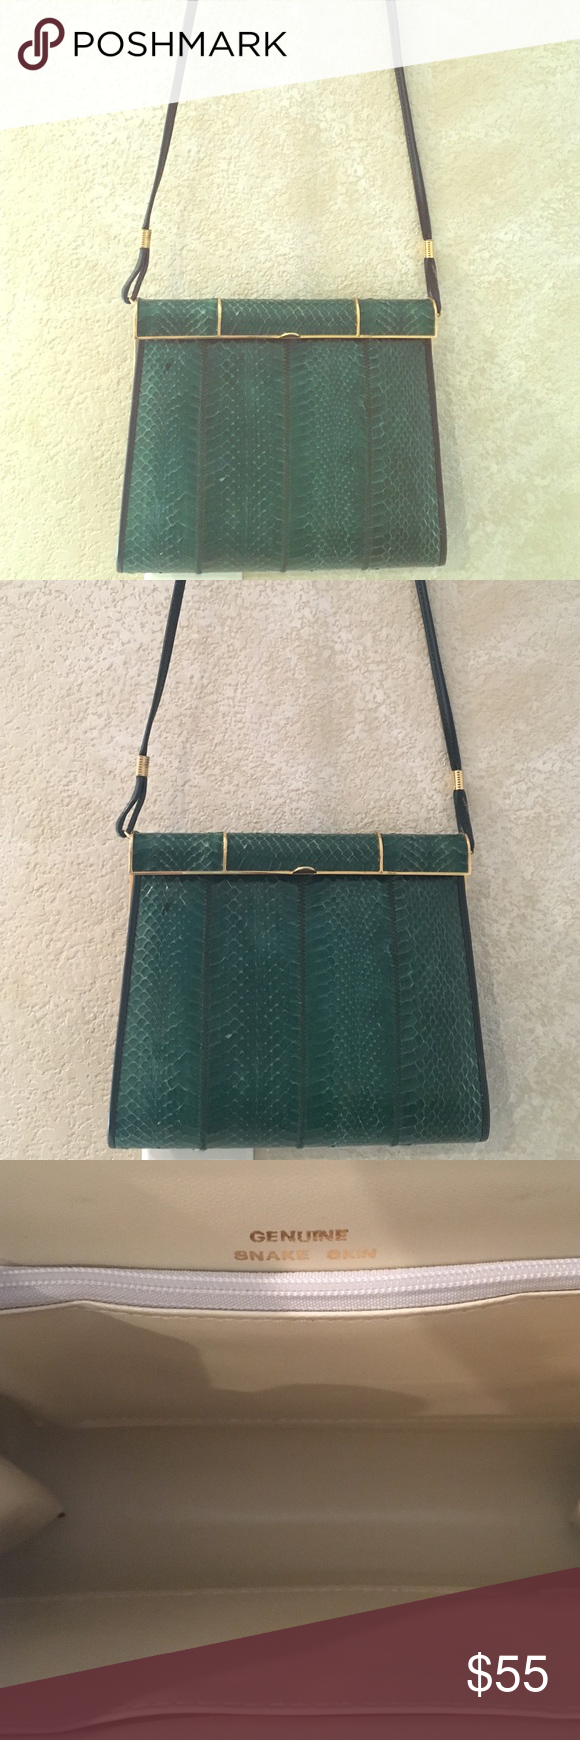 """Green SNAKE SKIN bag 8x7 genuine snake skin bag with 40"""" strap. Snap closure. Inside perfect. Outside has a few scrapes ( last pic). BEAUTIFUL ‼️ Bags Shoulder Bags"""